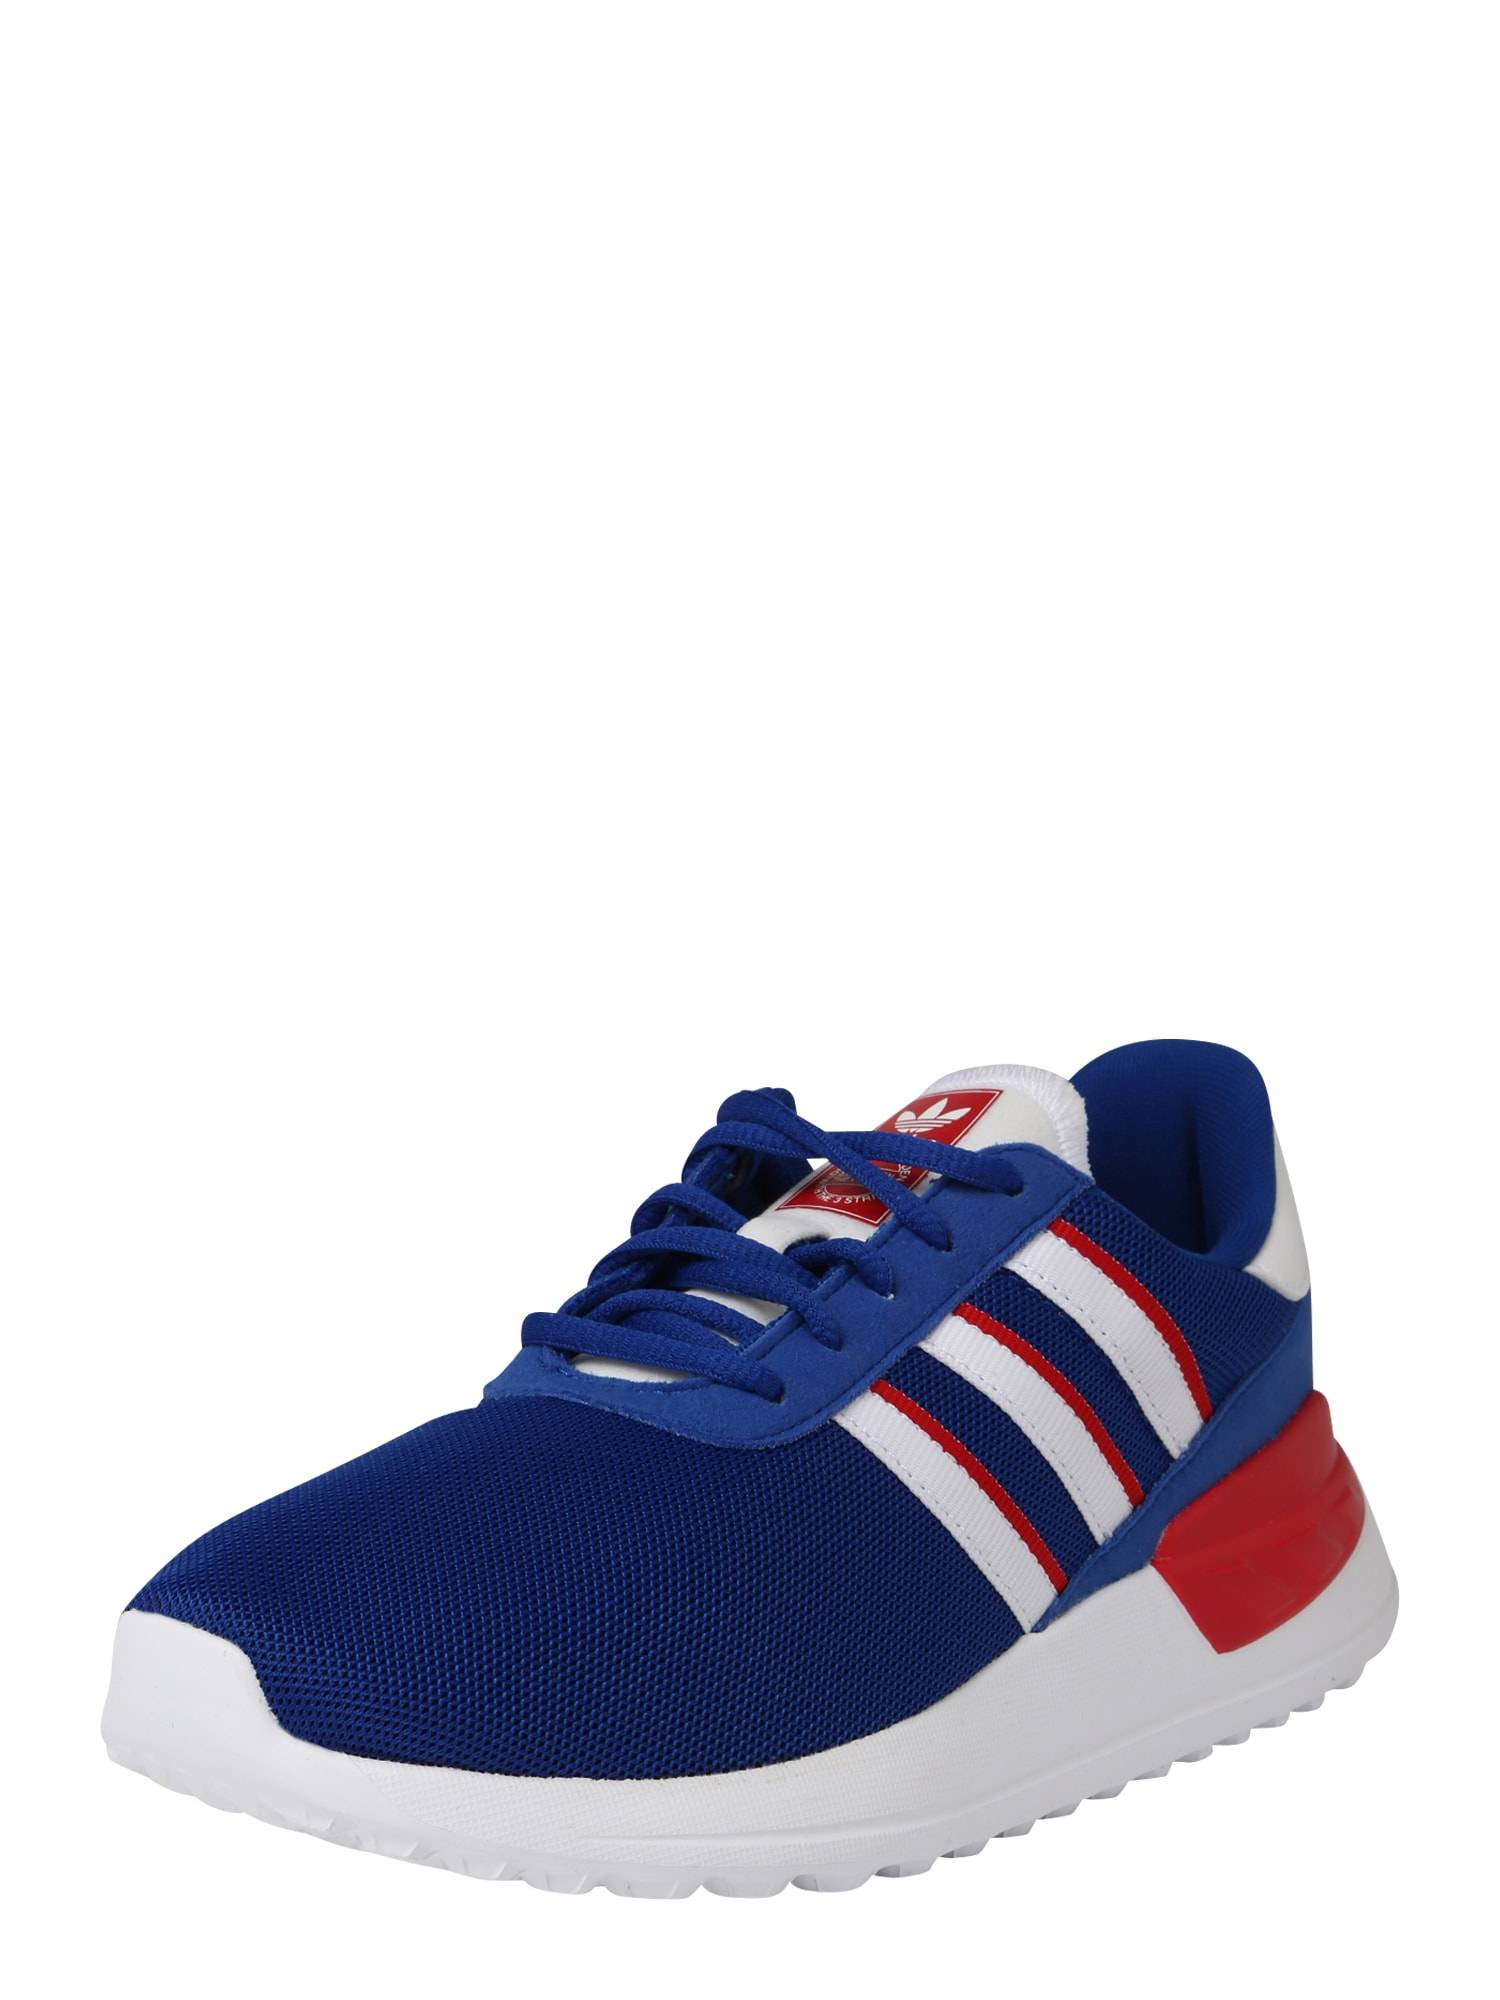 ADIDAS ORIGINALS Baskets 'LA TRAINER LITE C'  - Bleu - Taille: 29 - boy